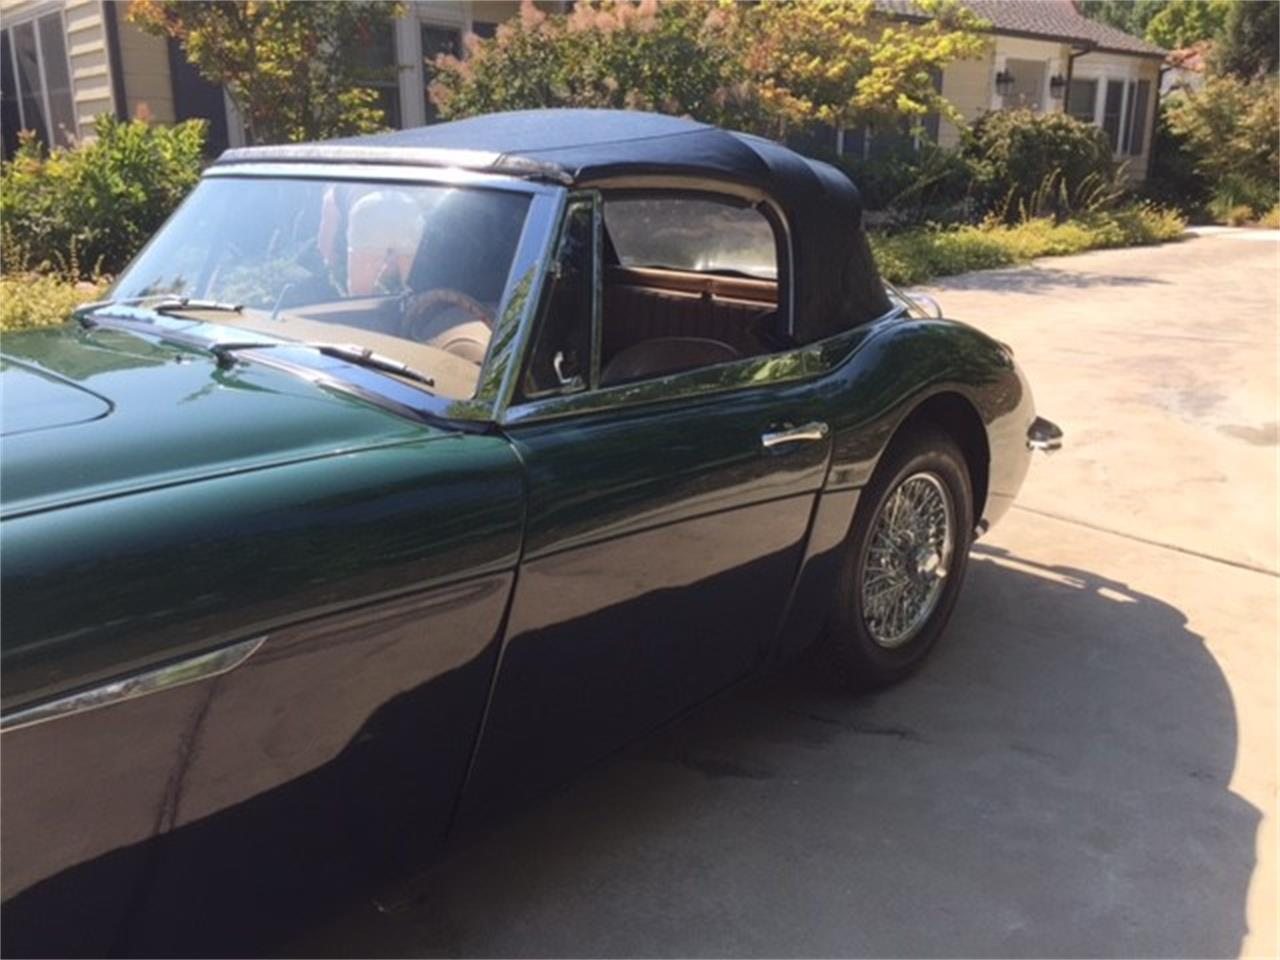 Large Picture of 1967 Austin-Healey 3000 located in Fresno California - $65,000.00 Offered by a Private Seller - LBWQ